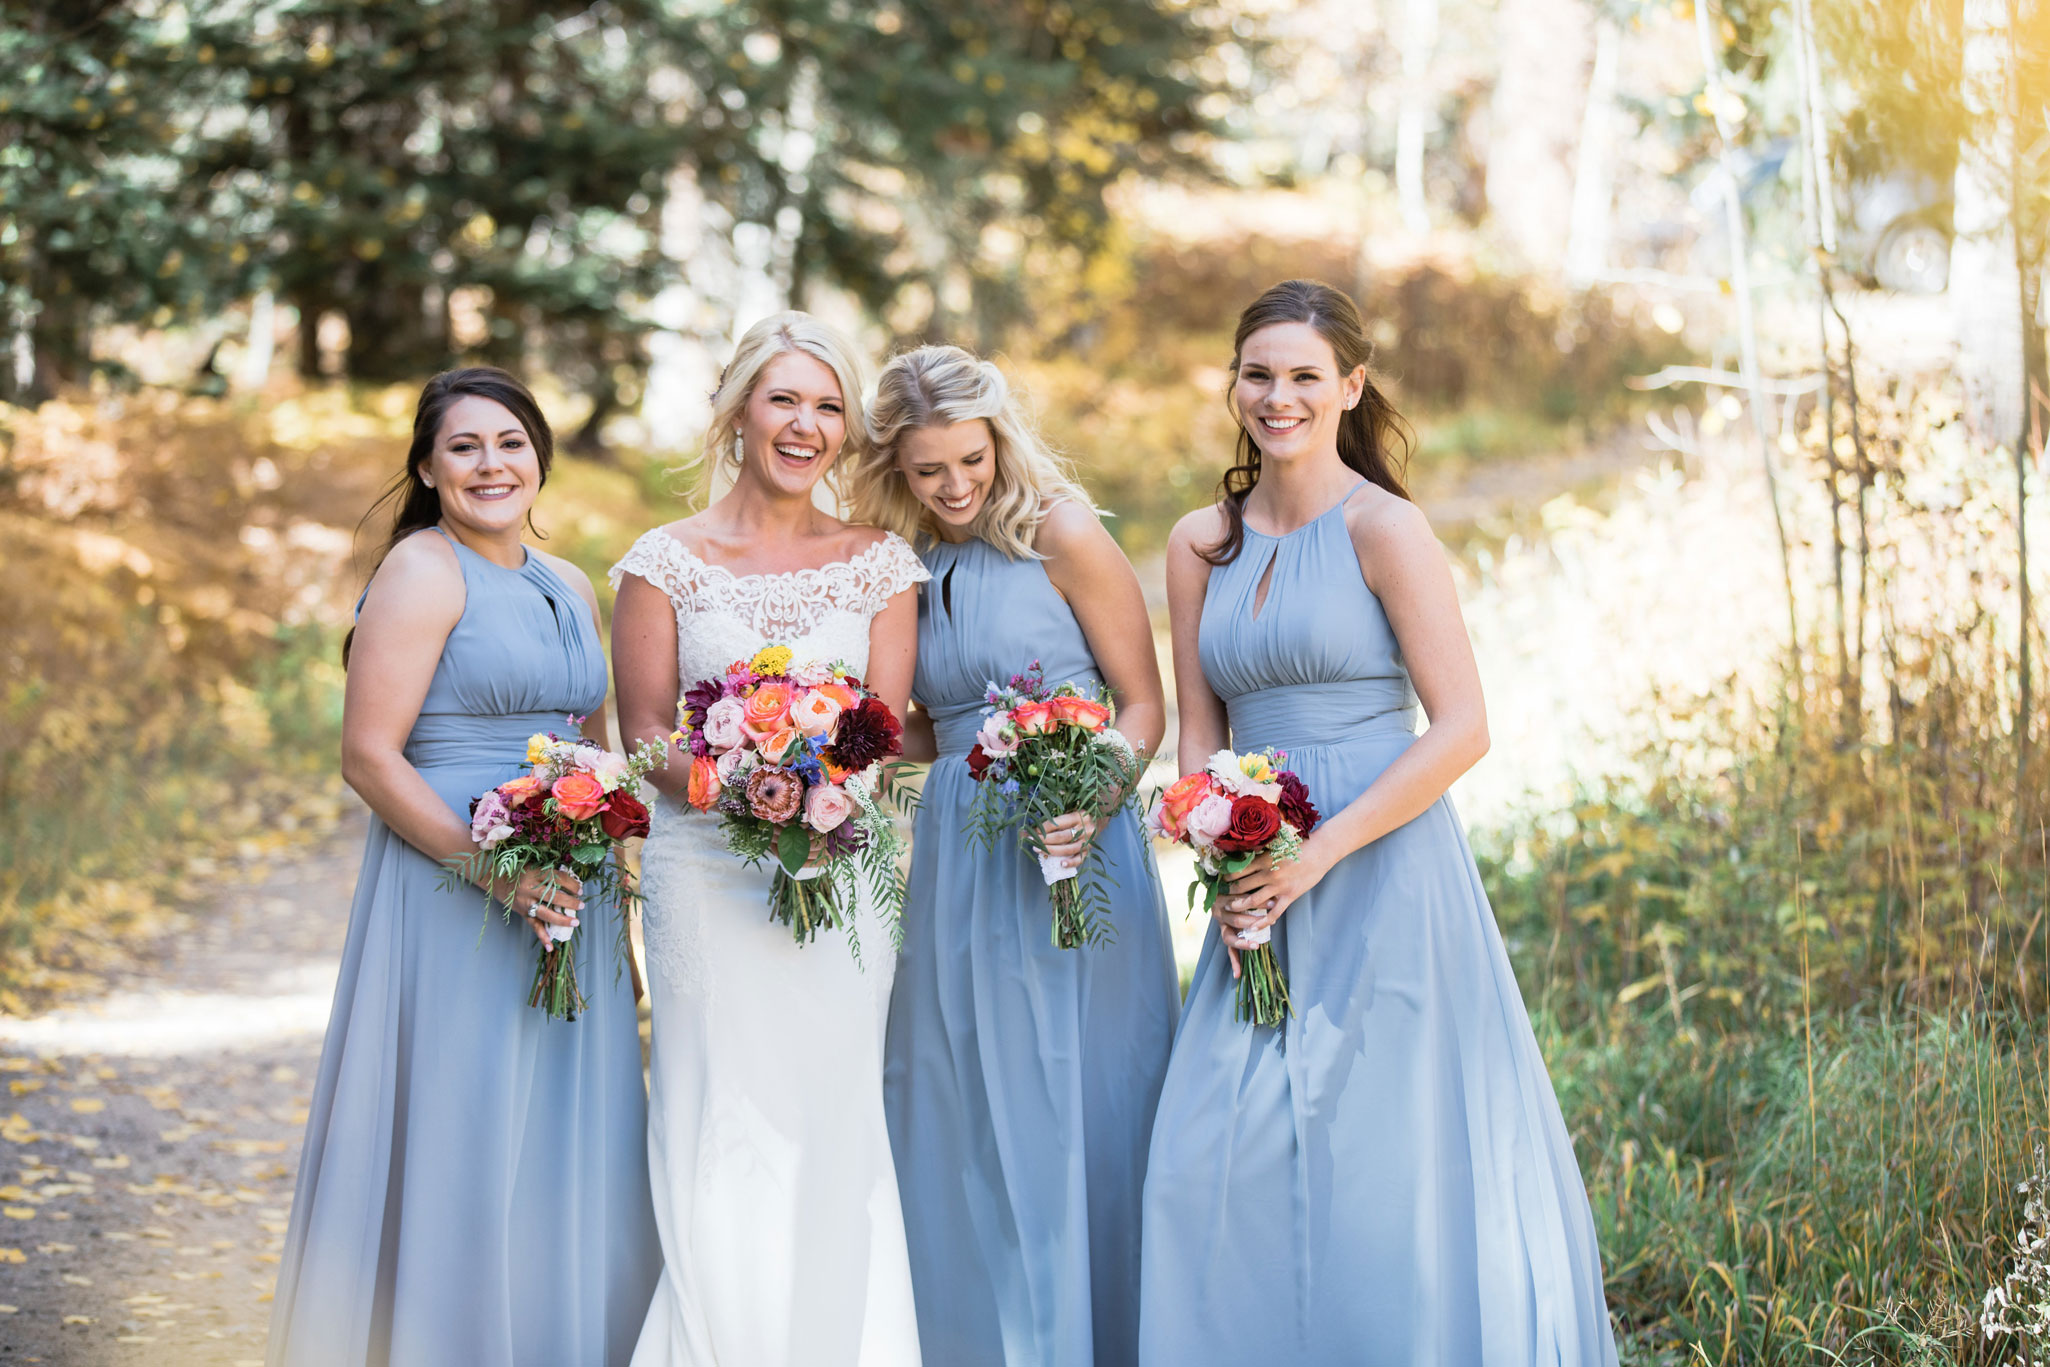 Cascade Village weddings, Durango, Colorado